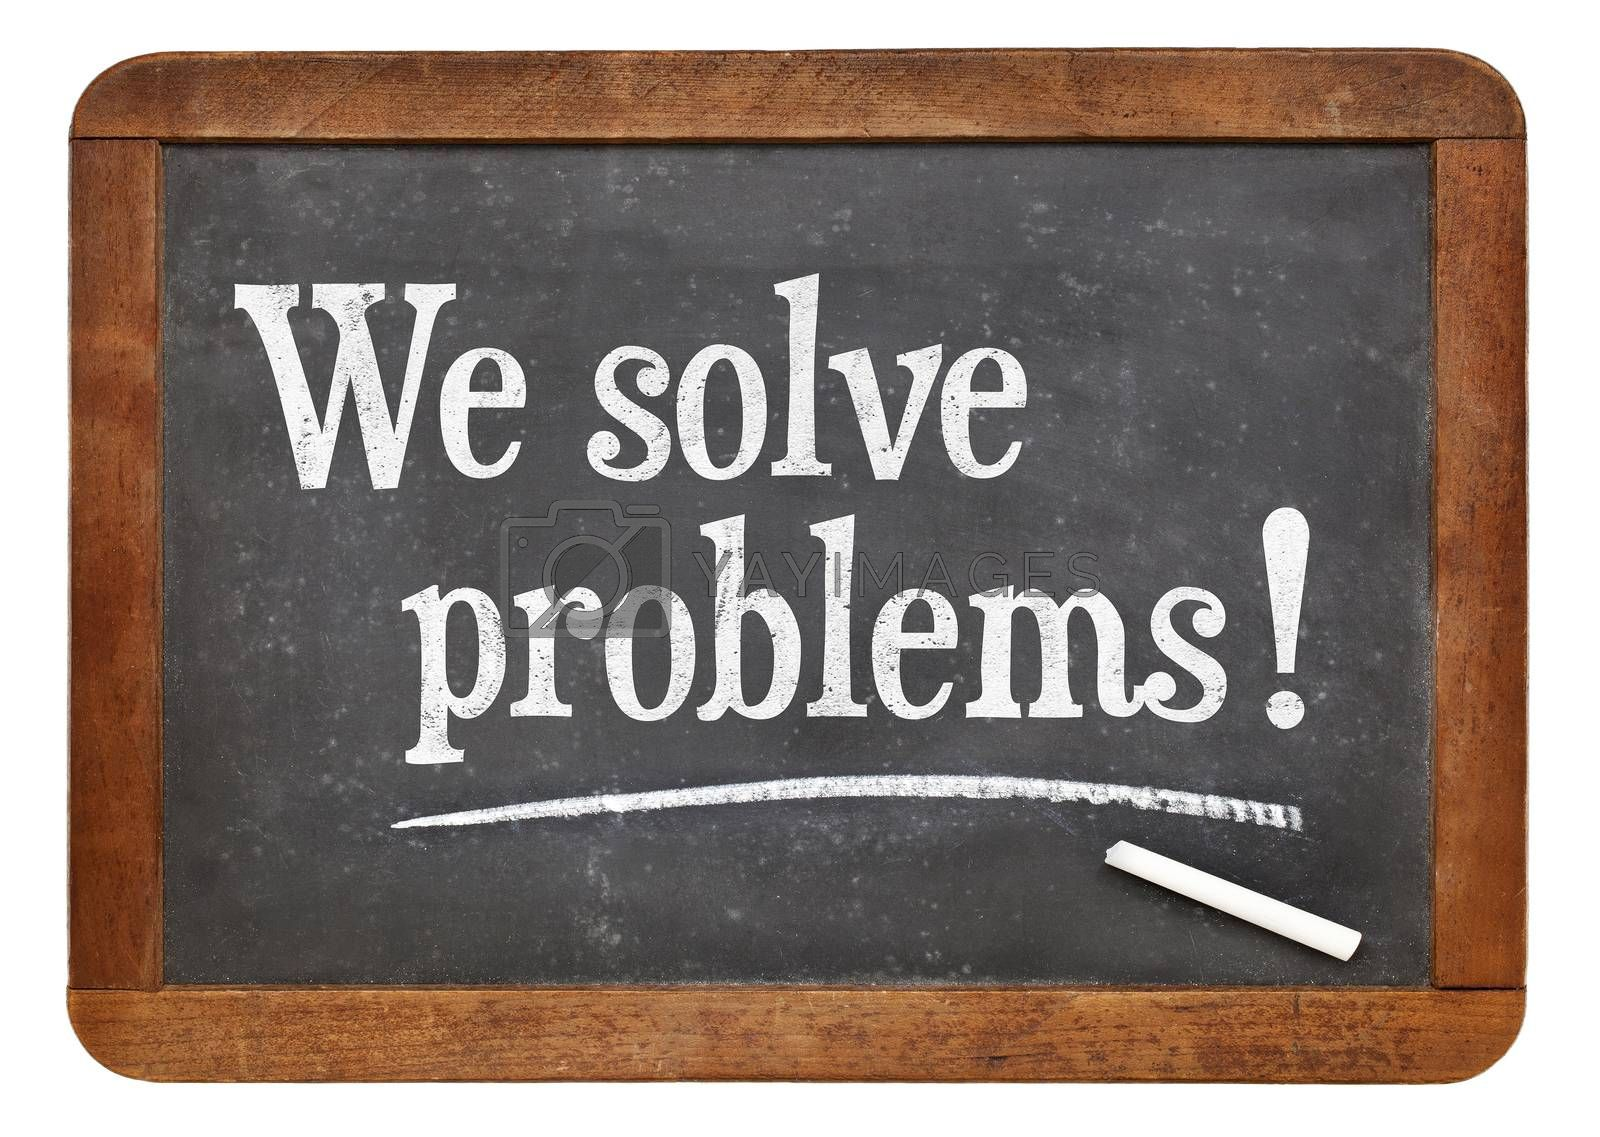 Royalty free image of We solve problems - service marketing by PixelsAway